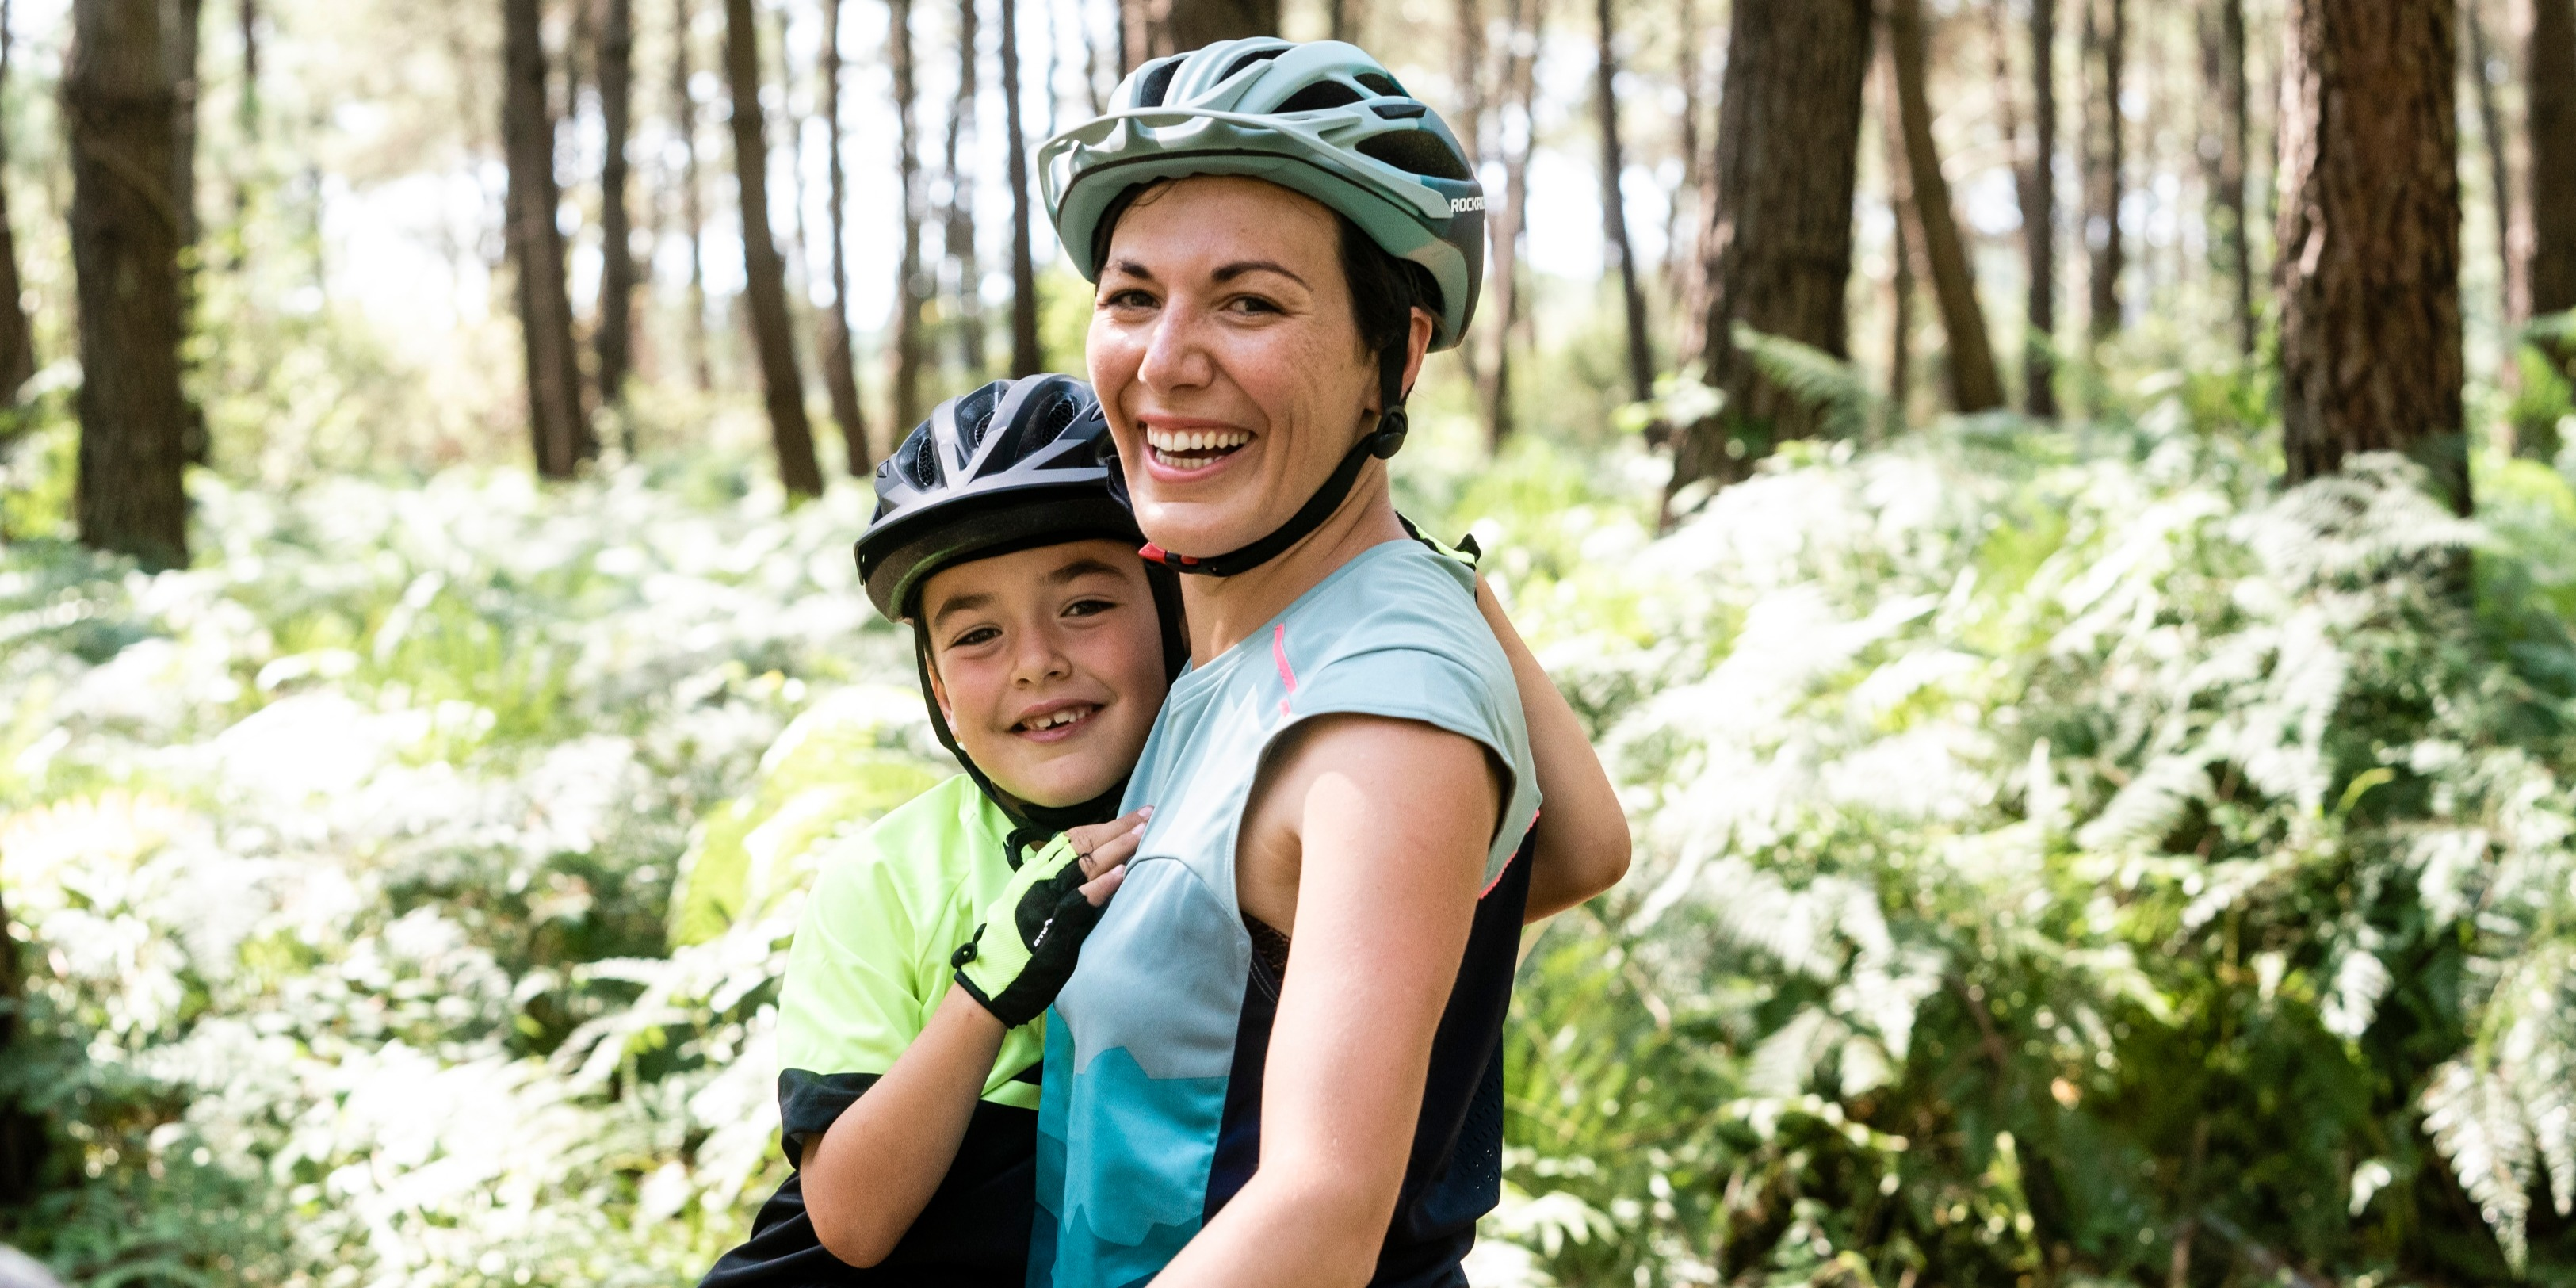 Where Is Good To Go Family Leisure Cycling For Beginners?